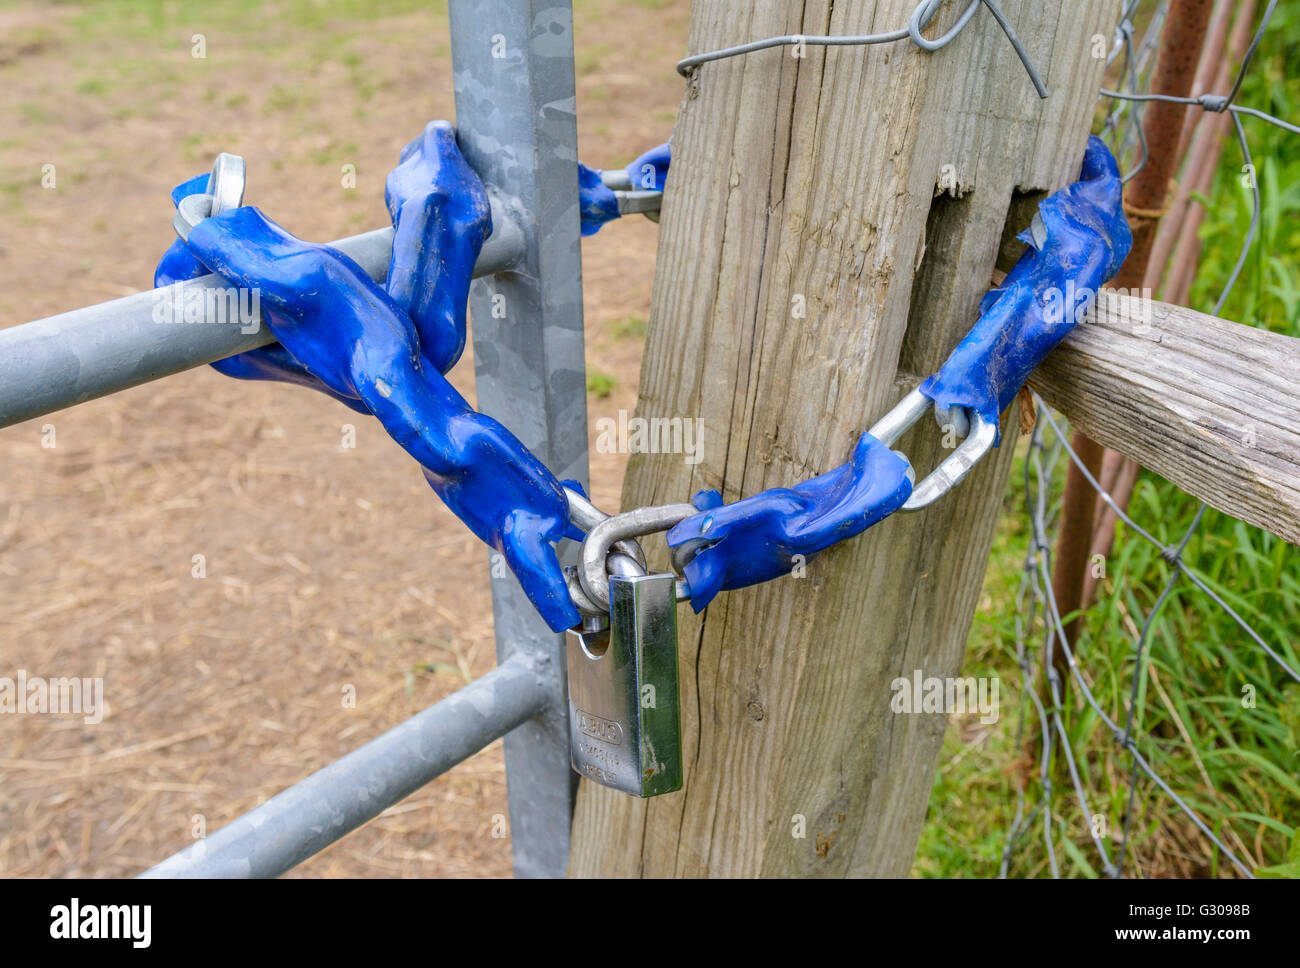 Padlock and chain securing a gate. - Stock Image